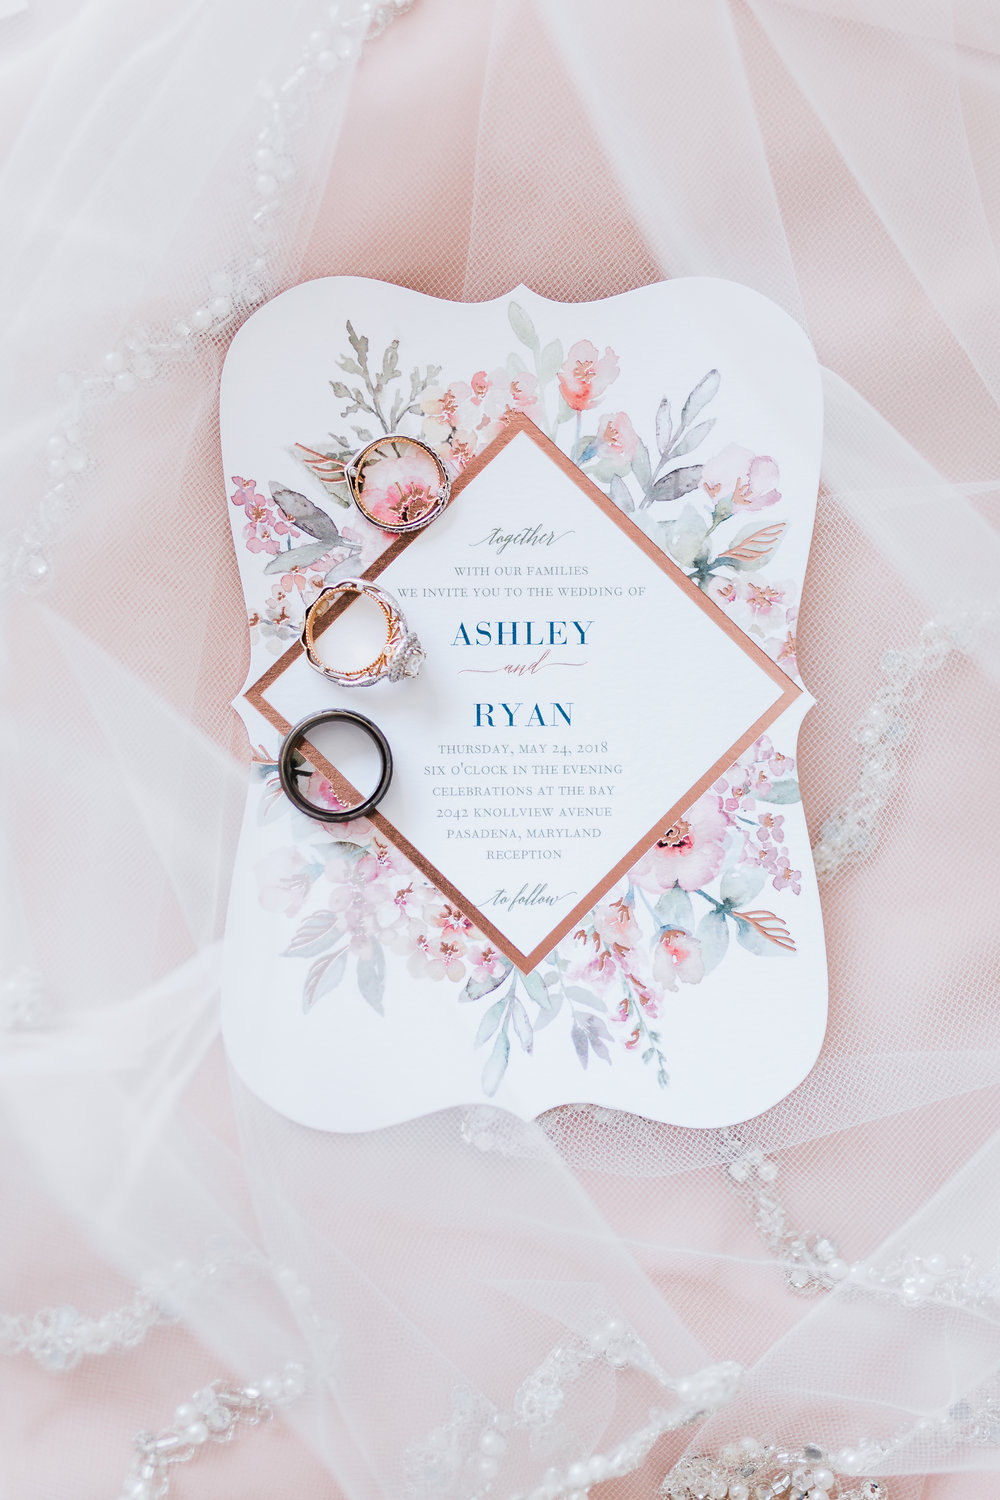 wedding invitation and rings for pasadena md wedding